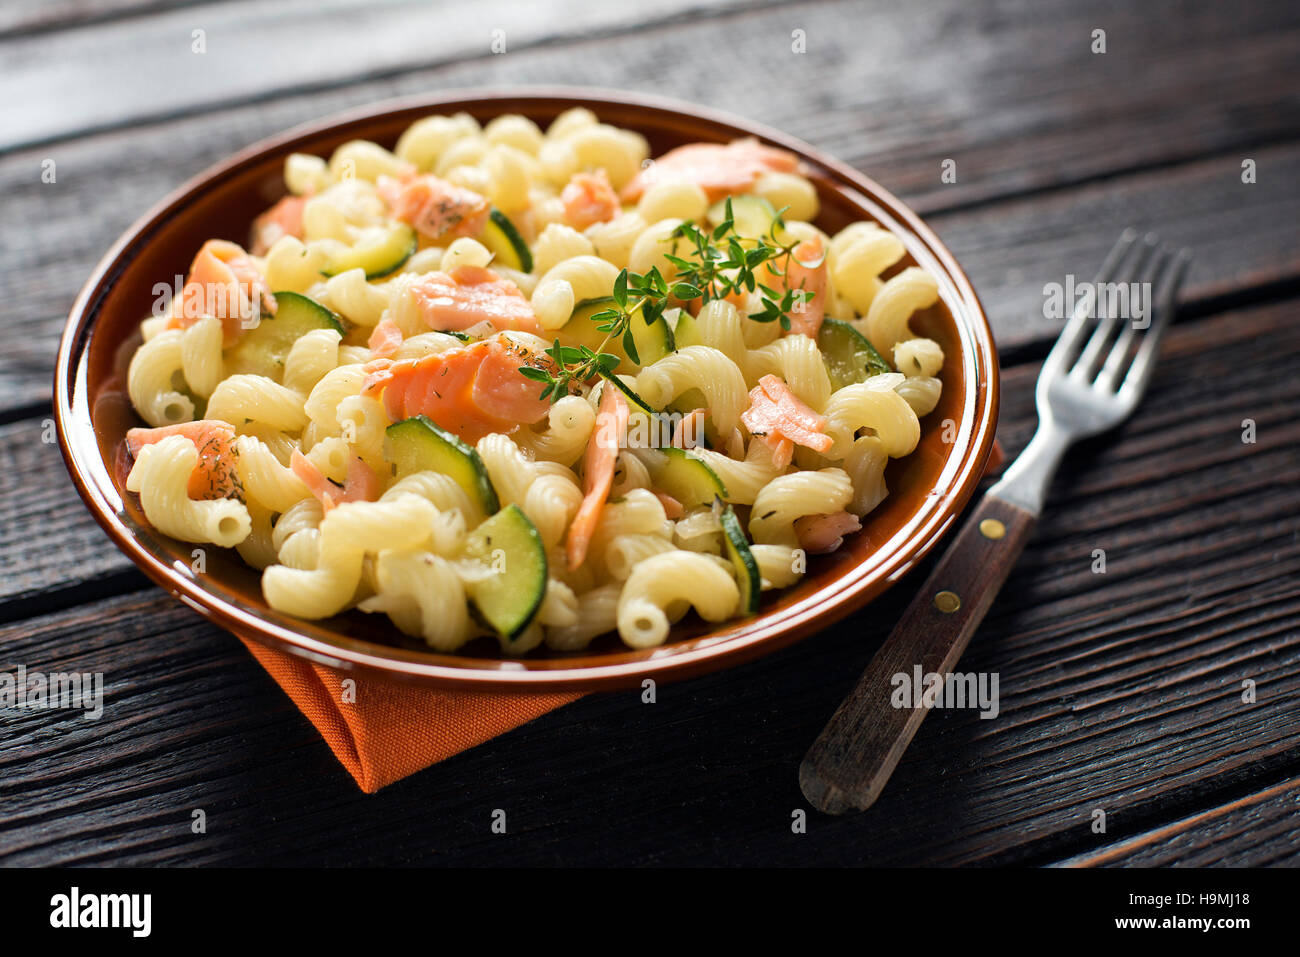 Fresh pasta with smoked salmon and vegetable - Stock Image